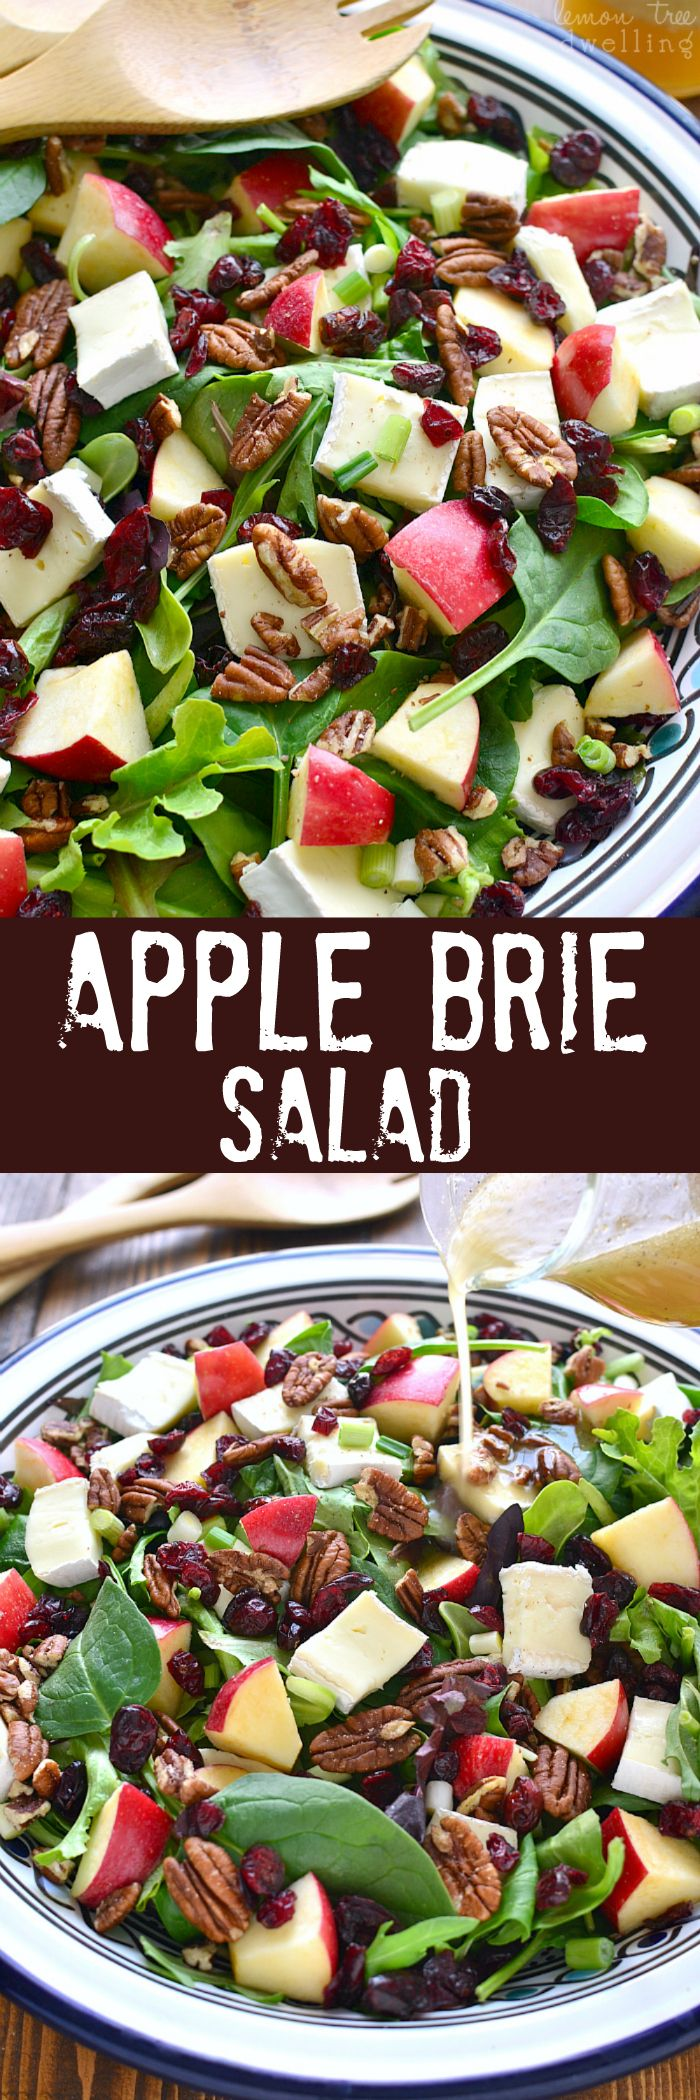 Apple Brie Salad - Combines the crispness of apples with the creaminess of brie cheese in a delicious salad that's perfect for winter!